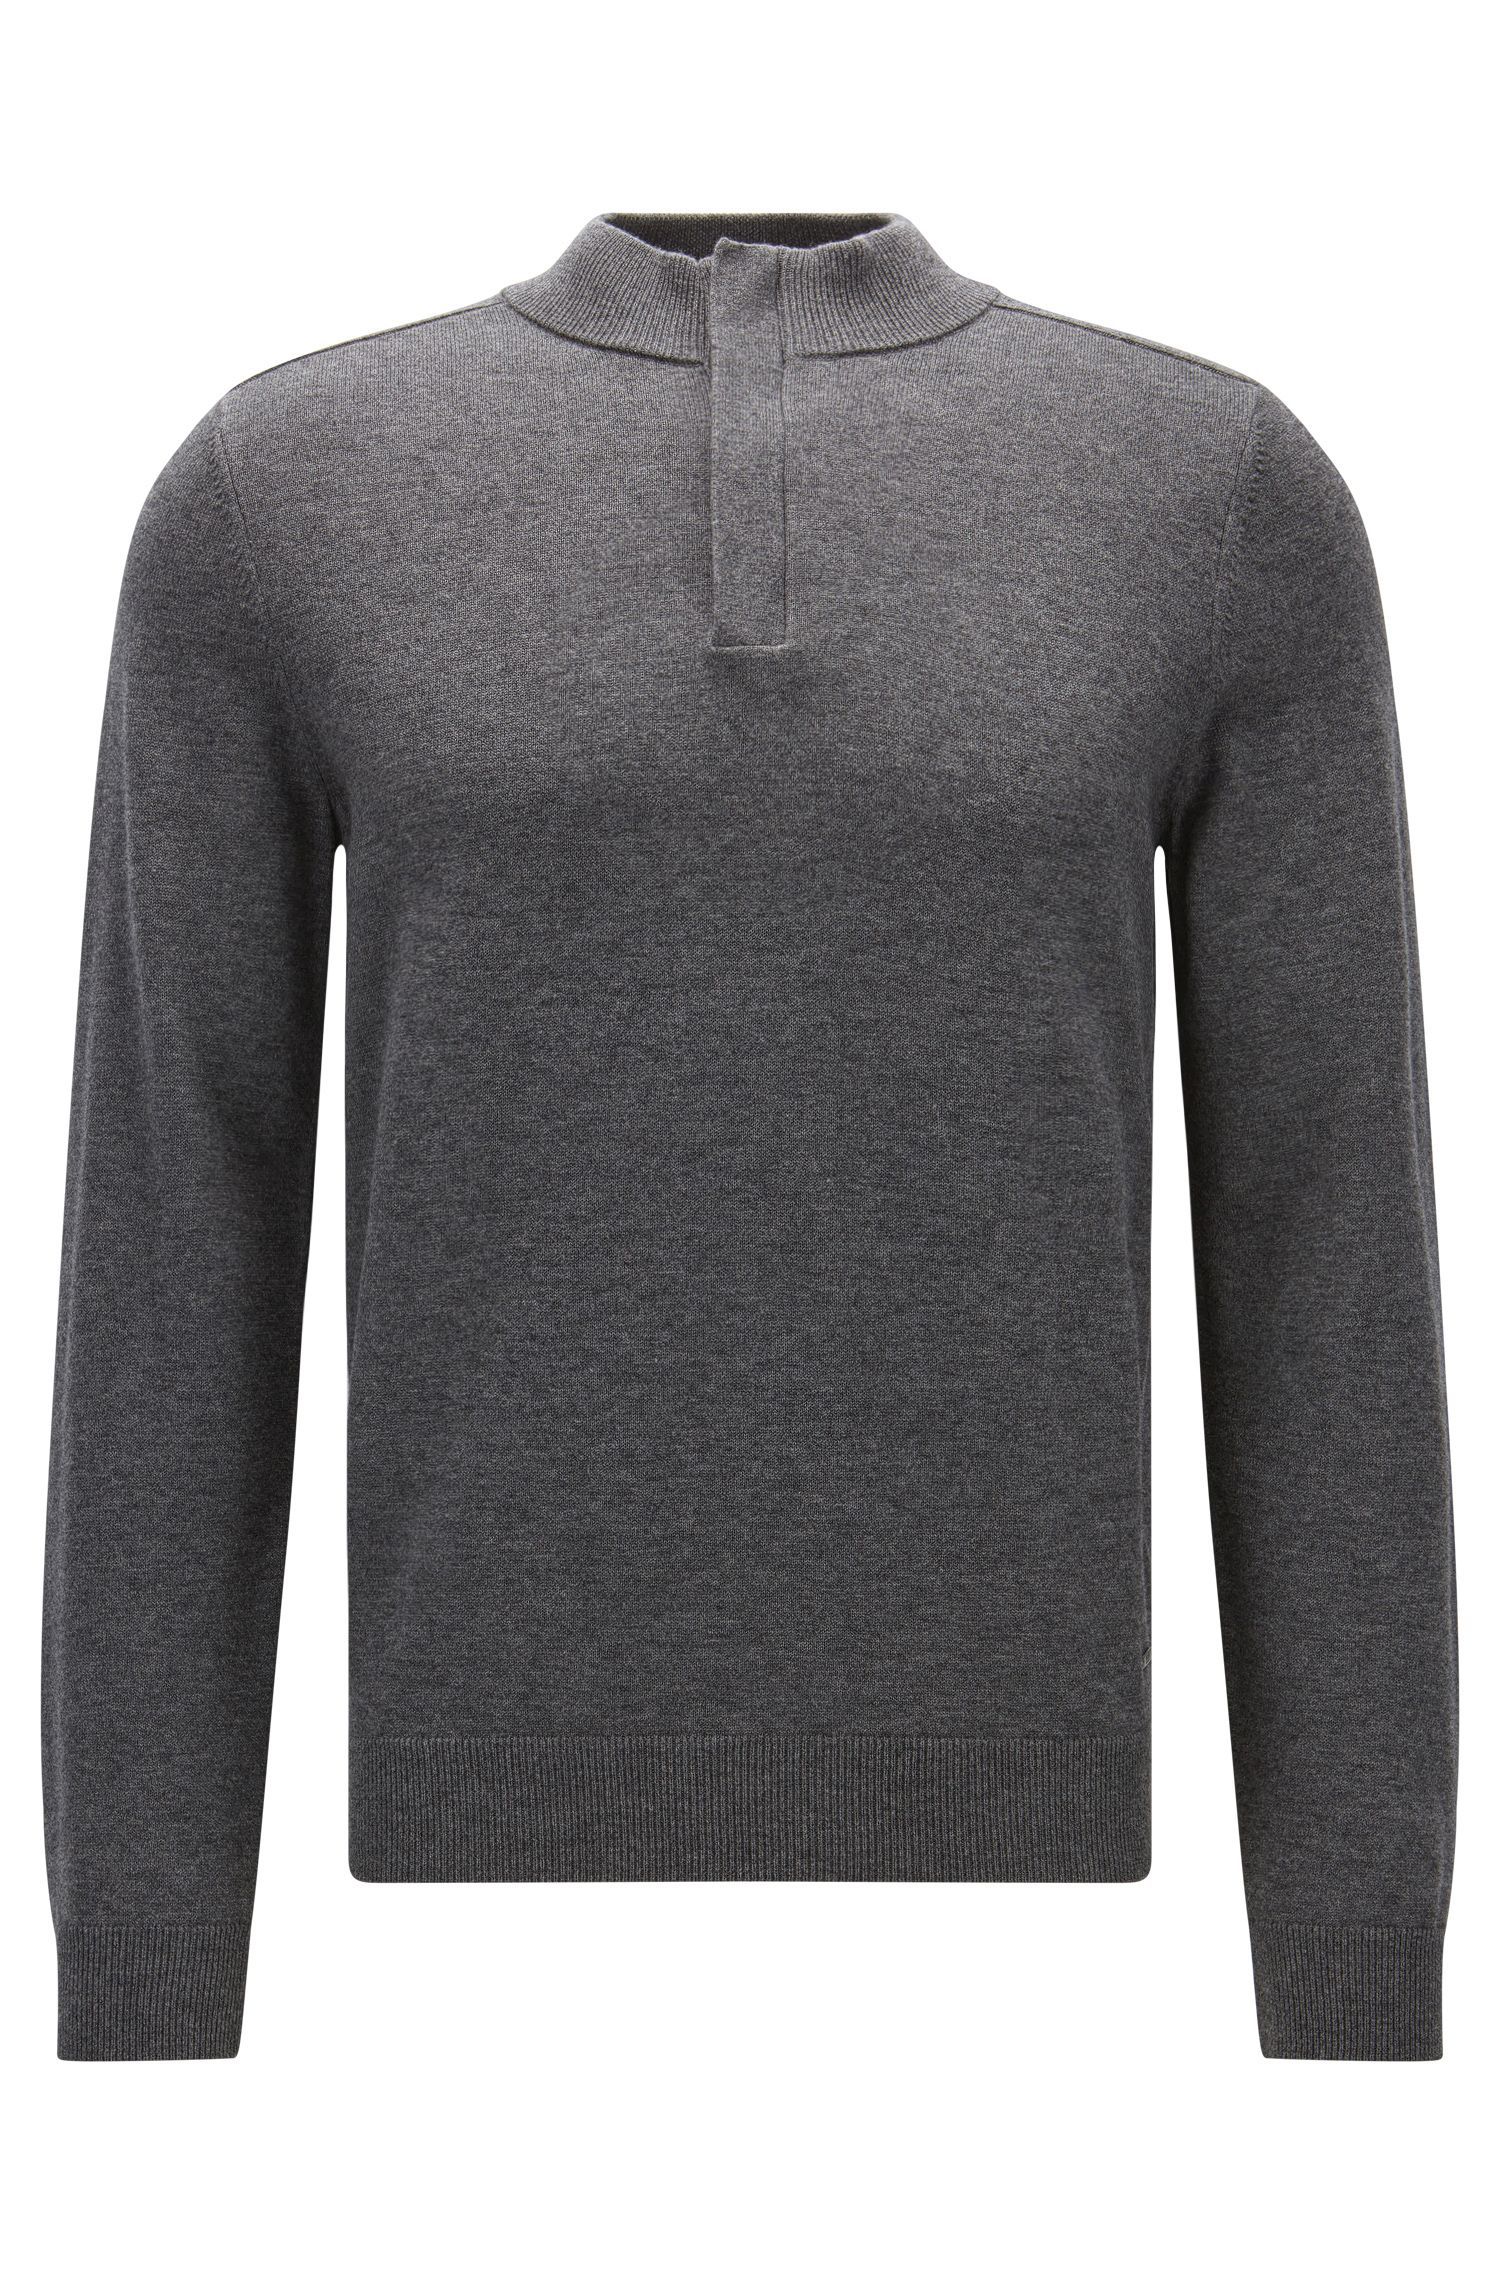 Concealed-zip neck sweater in a wool-cotton blend